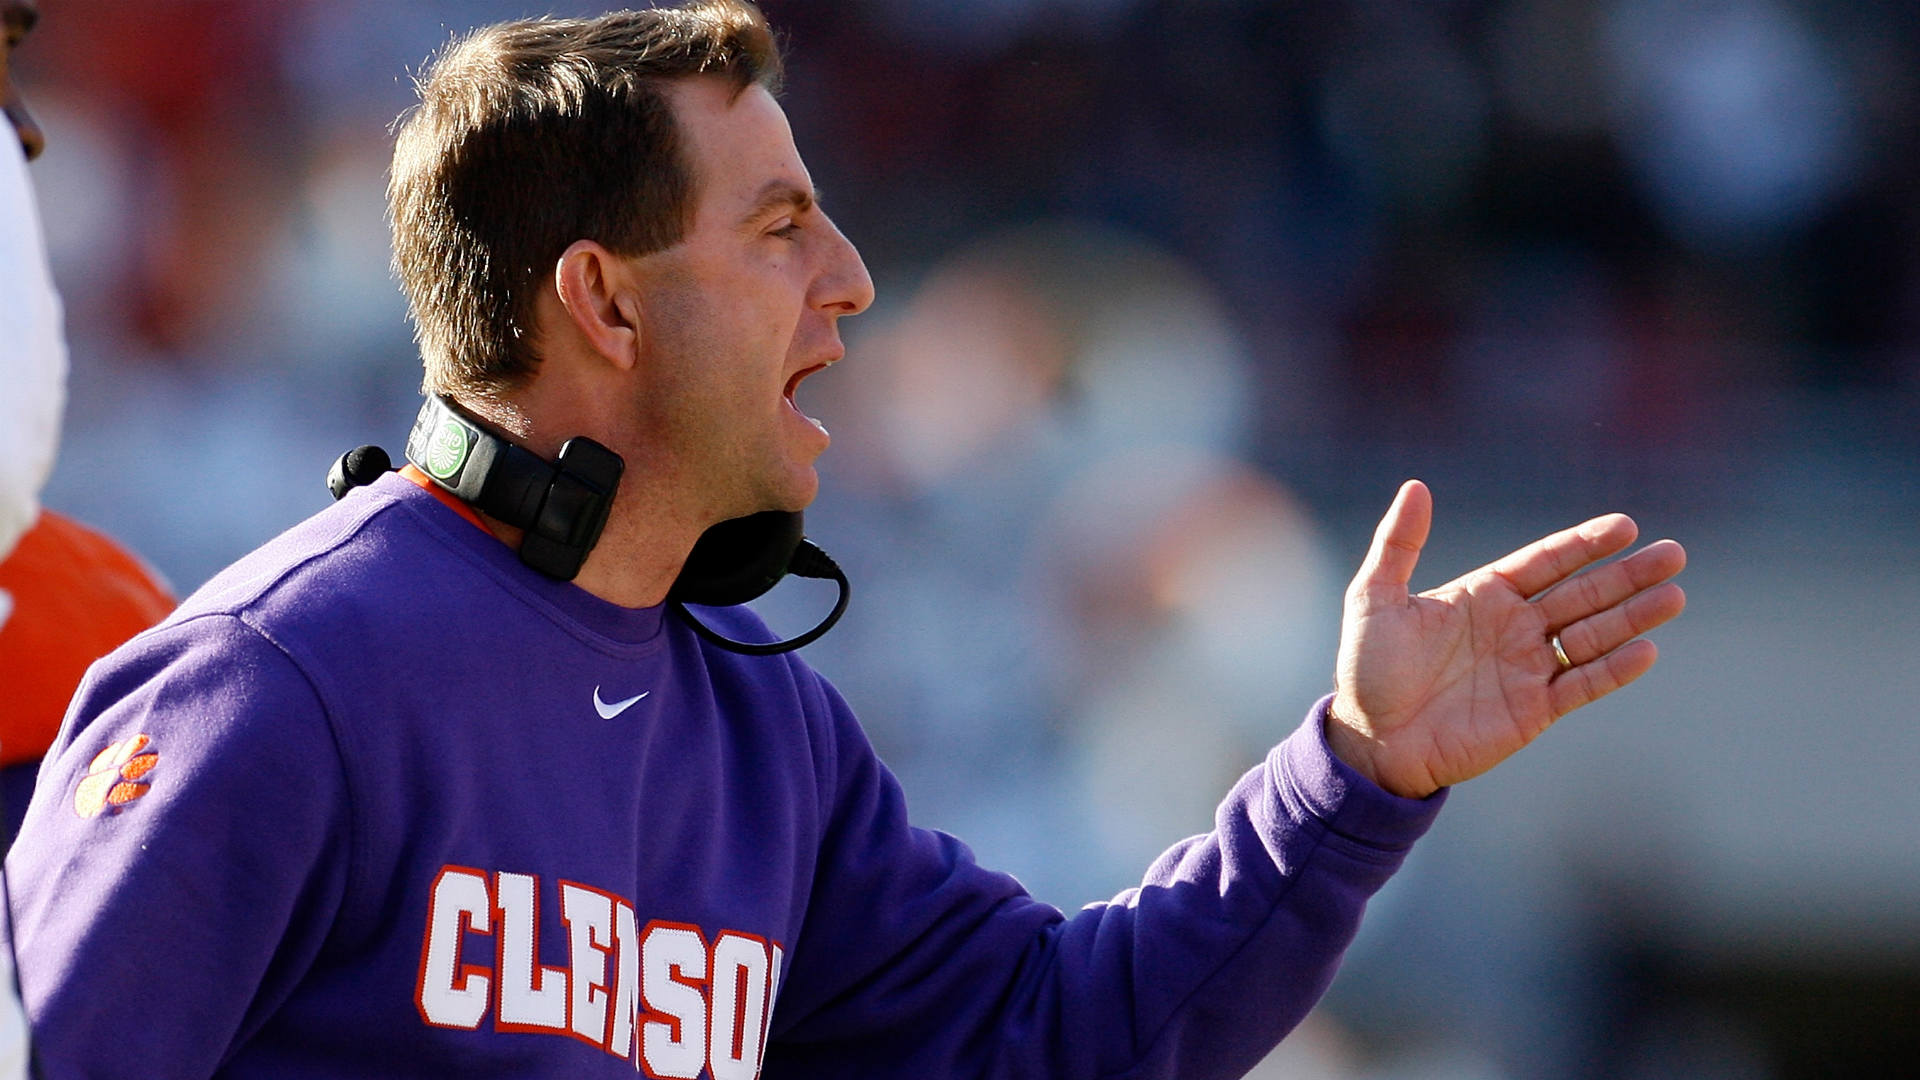 Clemson's Dabo Swinney faces pressure from students, LGBT groups over fundraiser